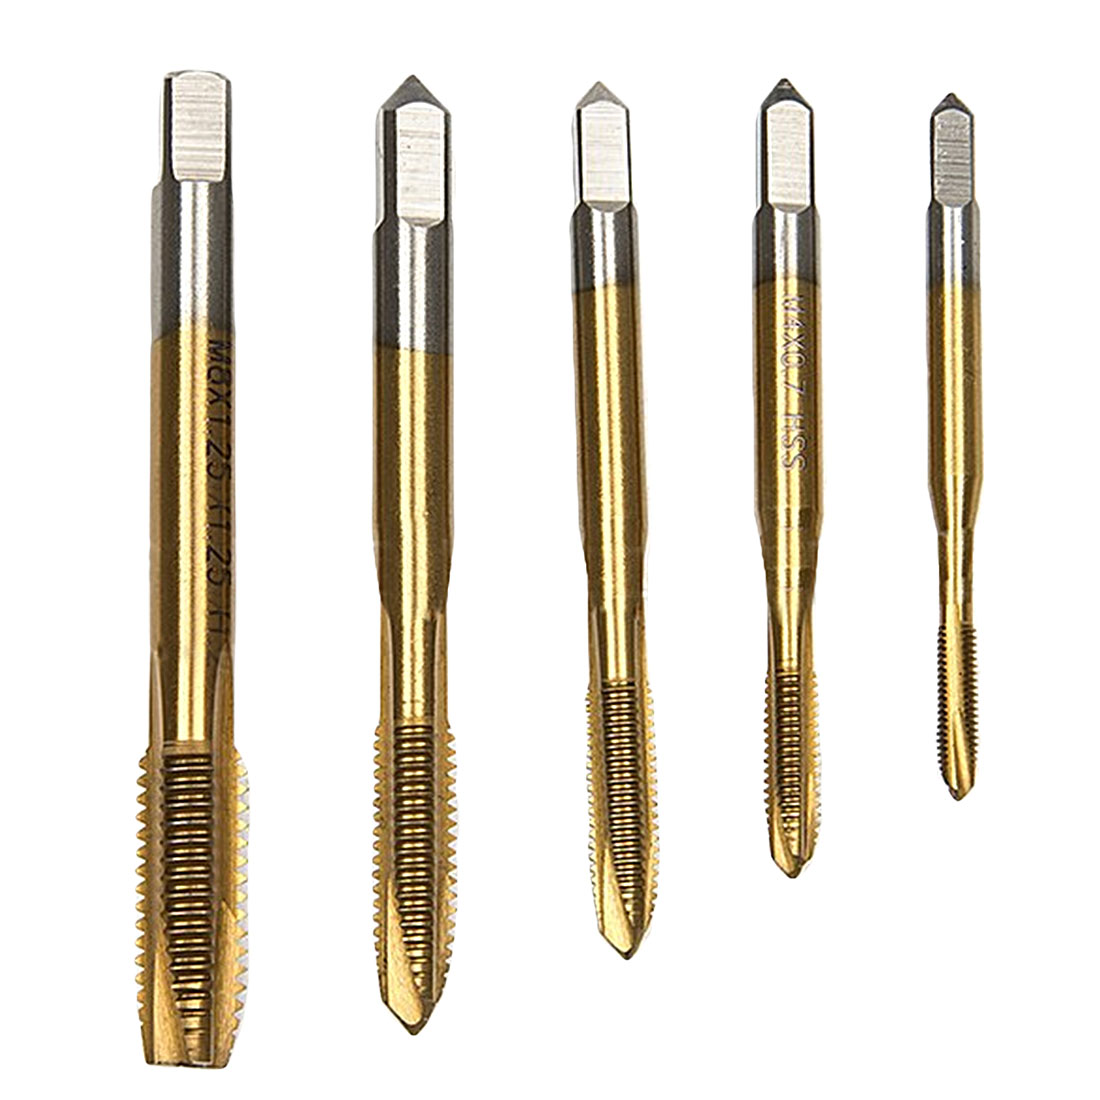 HSS Titanium Machine Right Hand Tap Drill 5pcs/set 3 Flute M3 M4 M5 M6 M8 Spiral Point Thread Plug Handle Taps Die Set Hand Tool